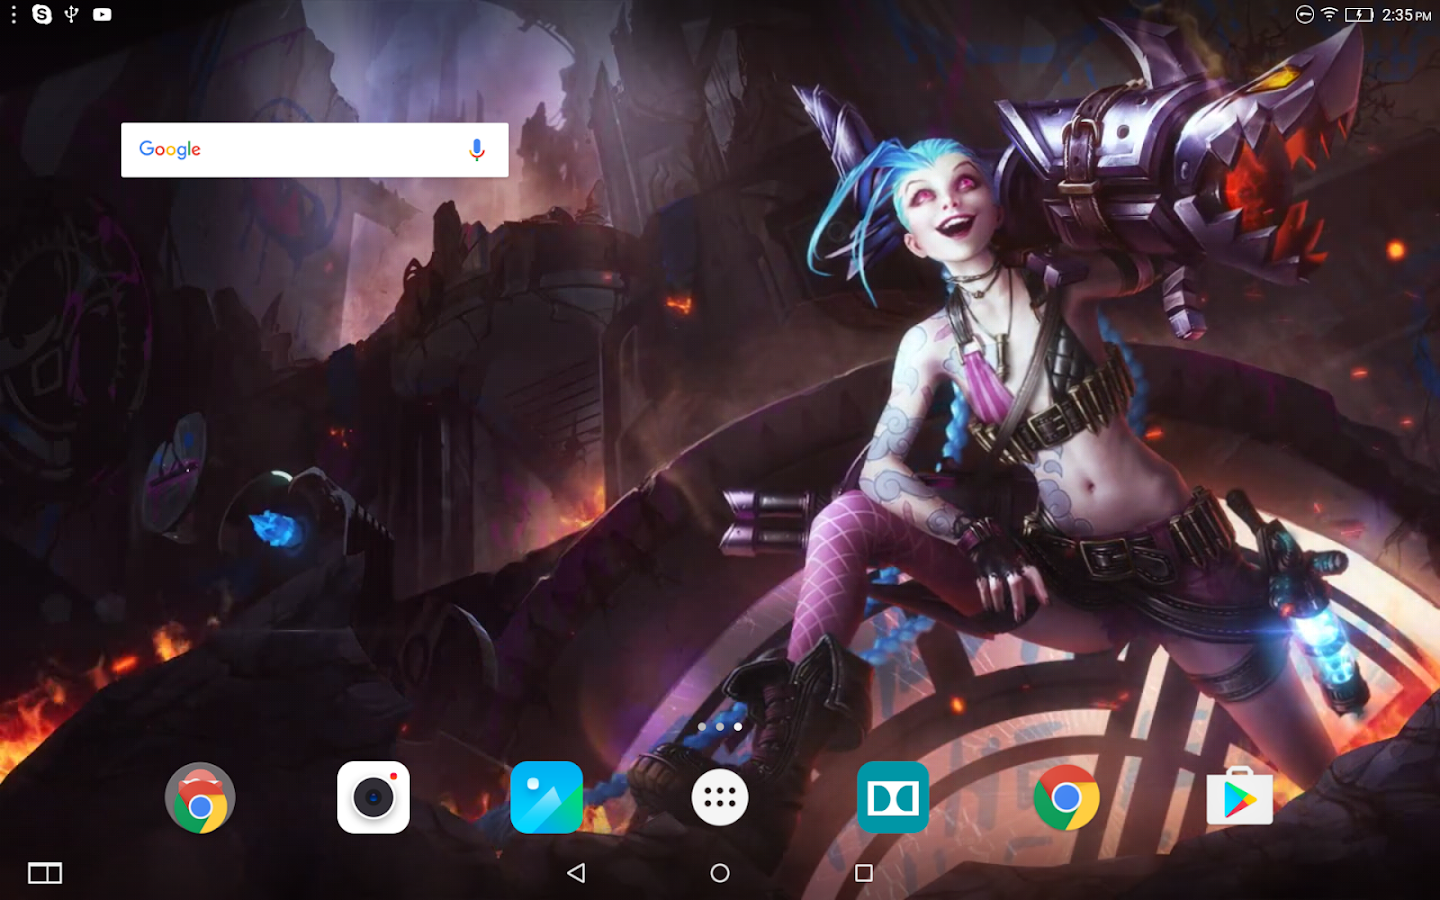 Jinx HD Live Wallpapers  screenshotJinx HD Live Wallpapers   Android Apps on Google Play. Lol Live Wallpaper Hd Apk. Home Design Ideas